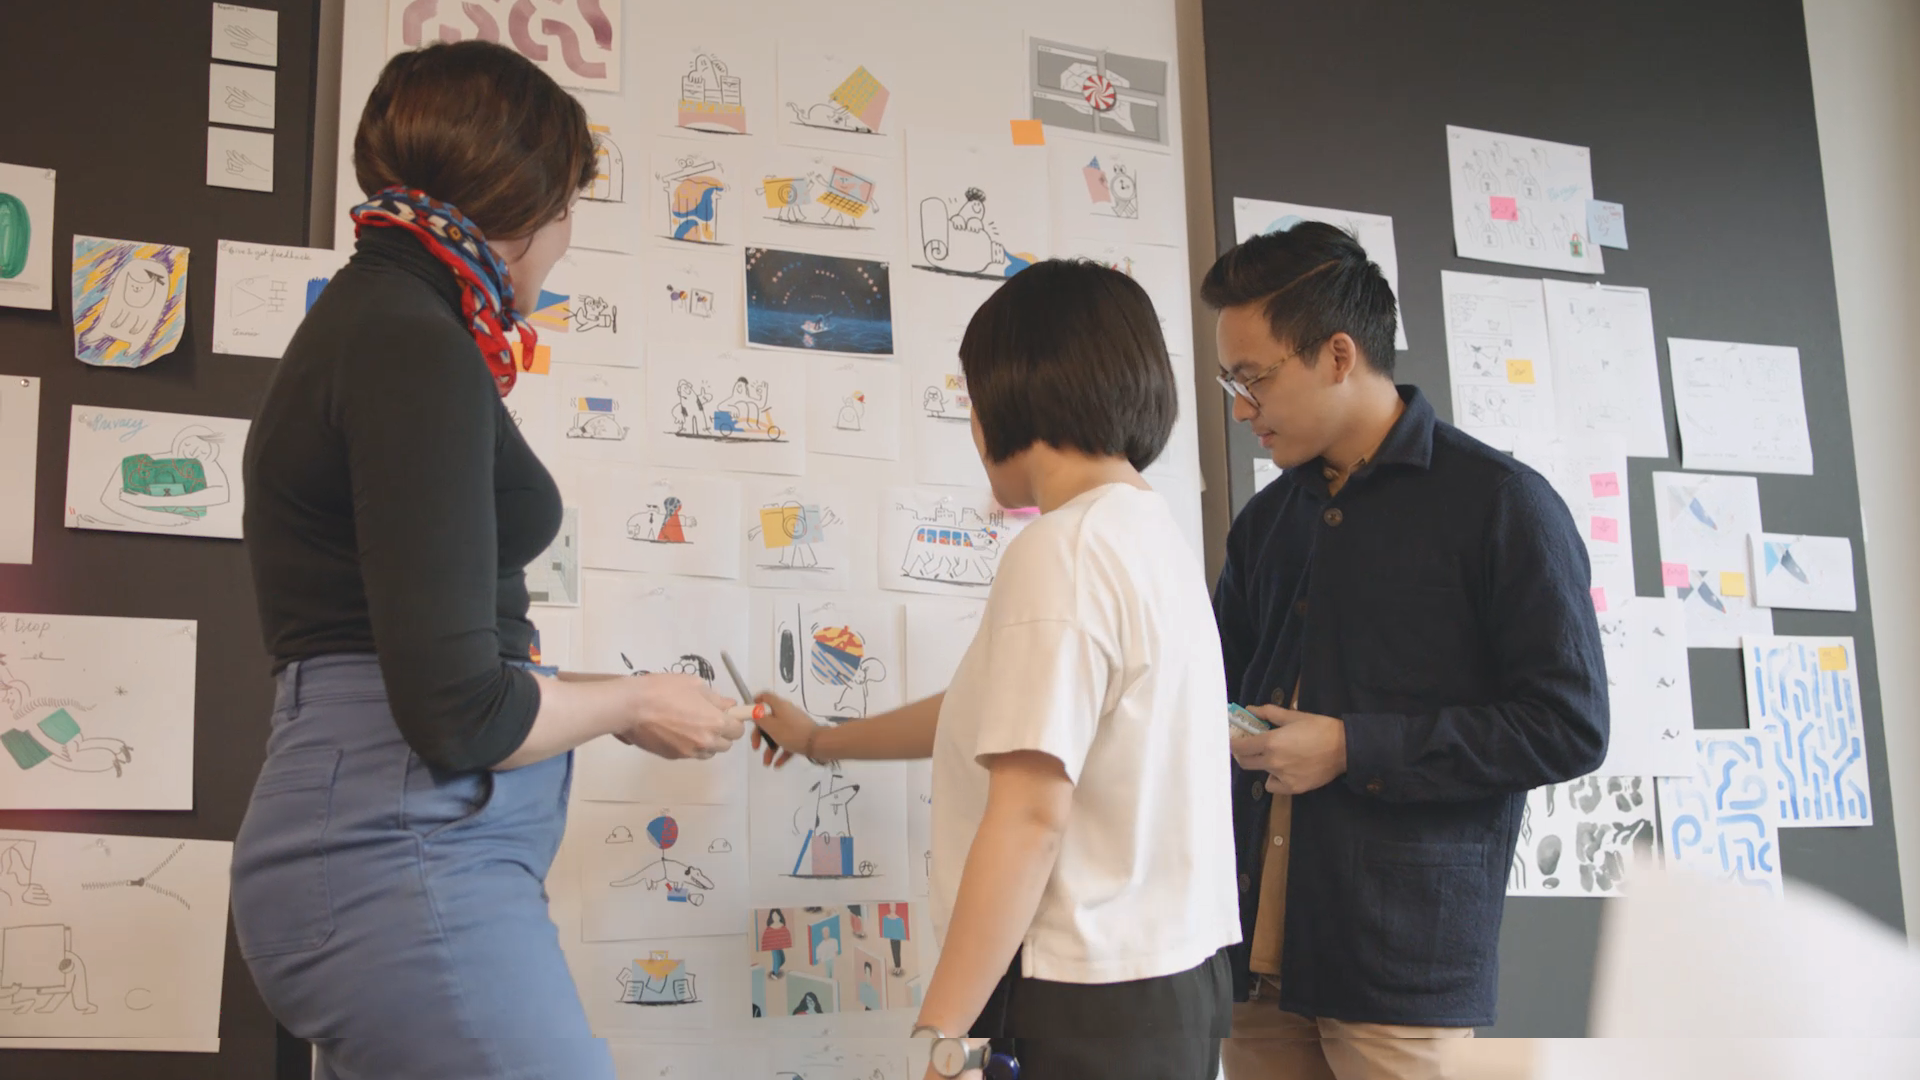 three members of the Dropbox team look at a wall with illustrations posted to it